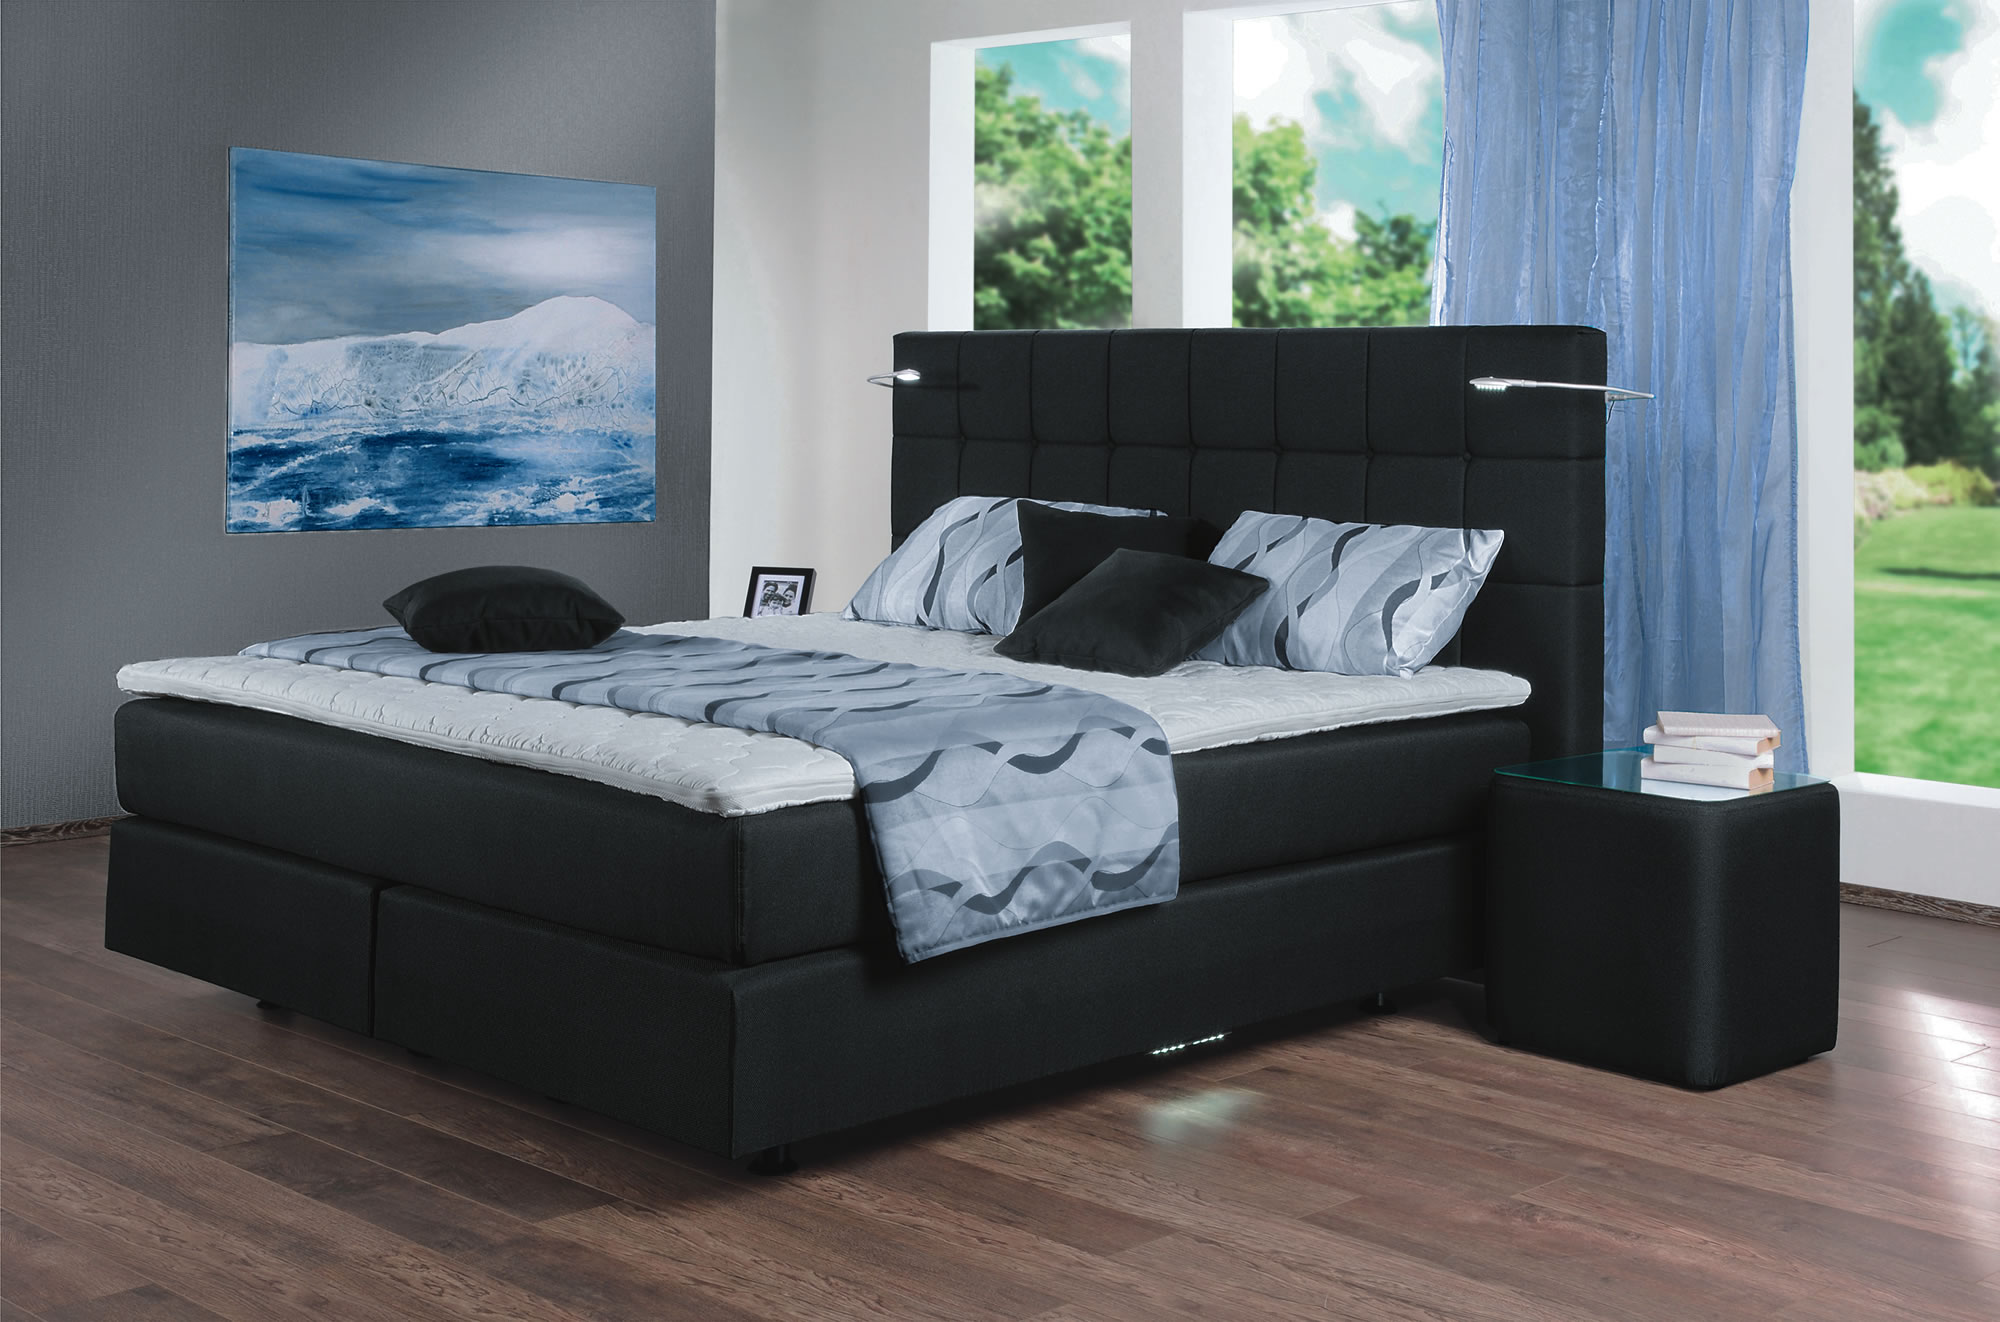 m bel markenm bel aus leidenschaft. Black Bedroom Furniture Sets. Home Design Ideas